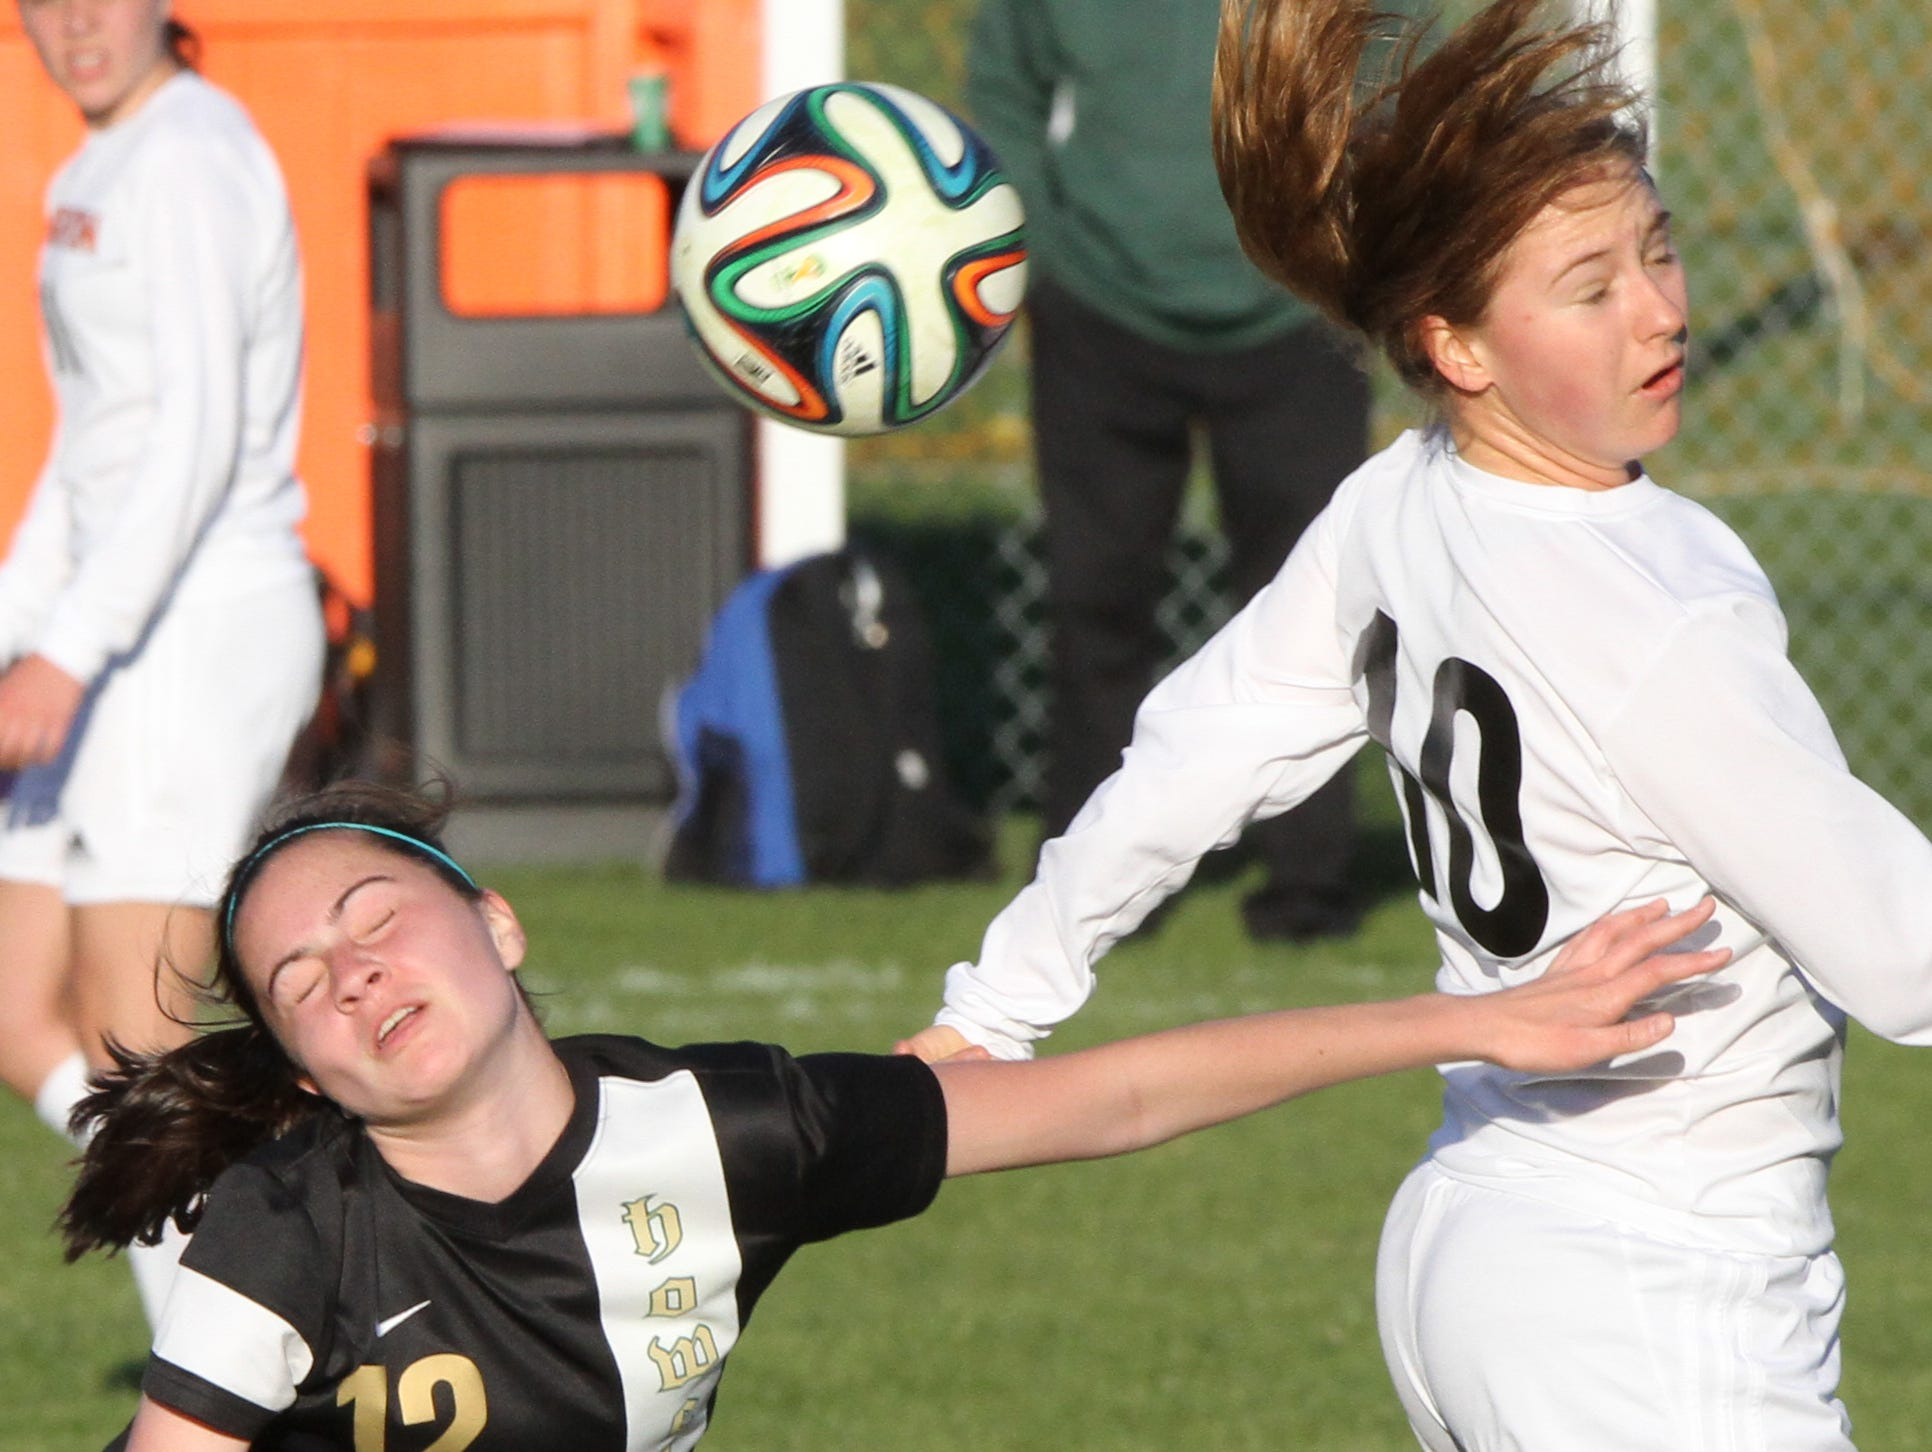 Howell's Lauren Yoder, left, and Brighton's Bailey Tuczak, right, jostle for position in a game Brigthton won, 2-0.